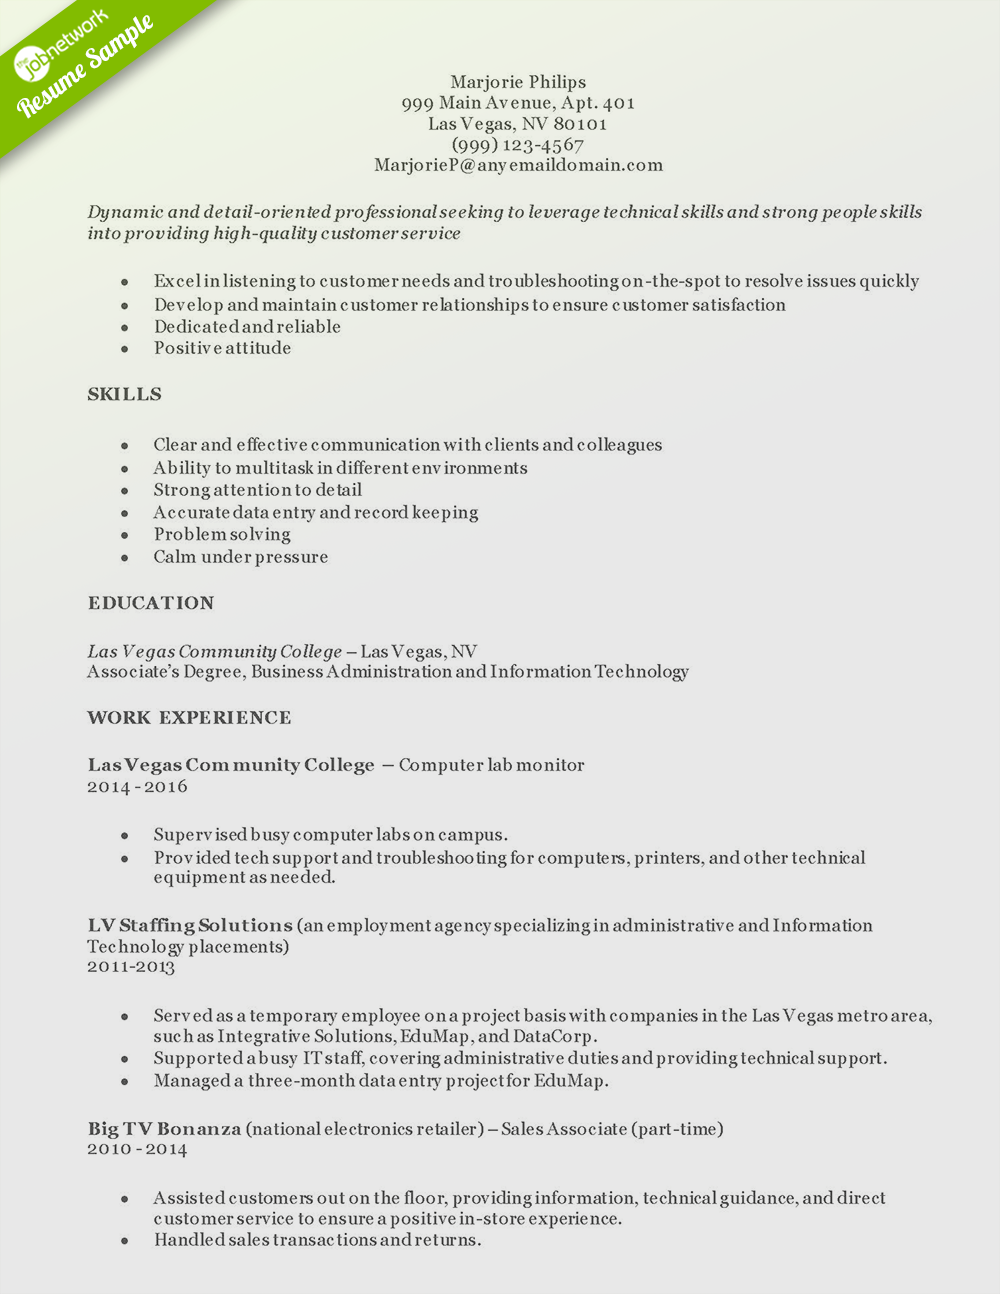 2014 Resume Templates | How To Craft A Perfect Customer Service Resume Using Examples